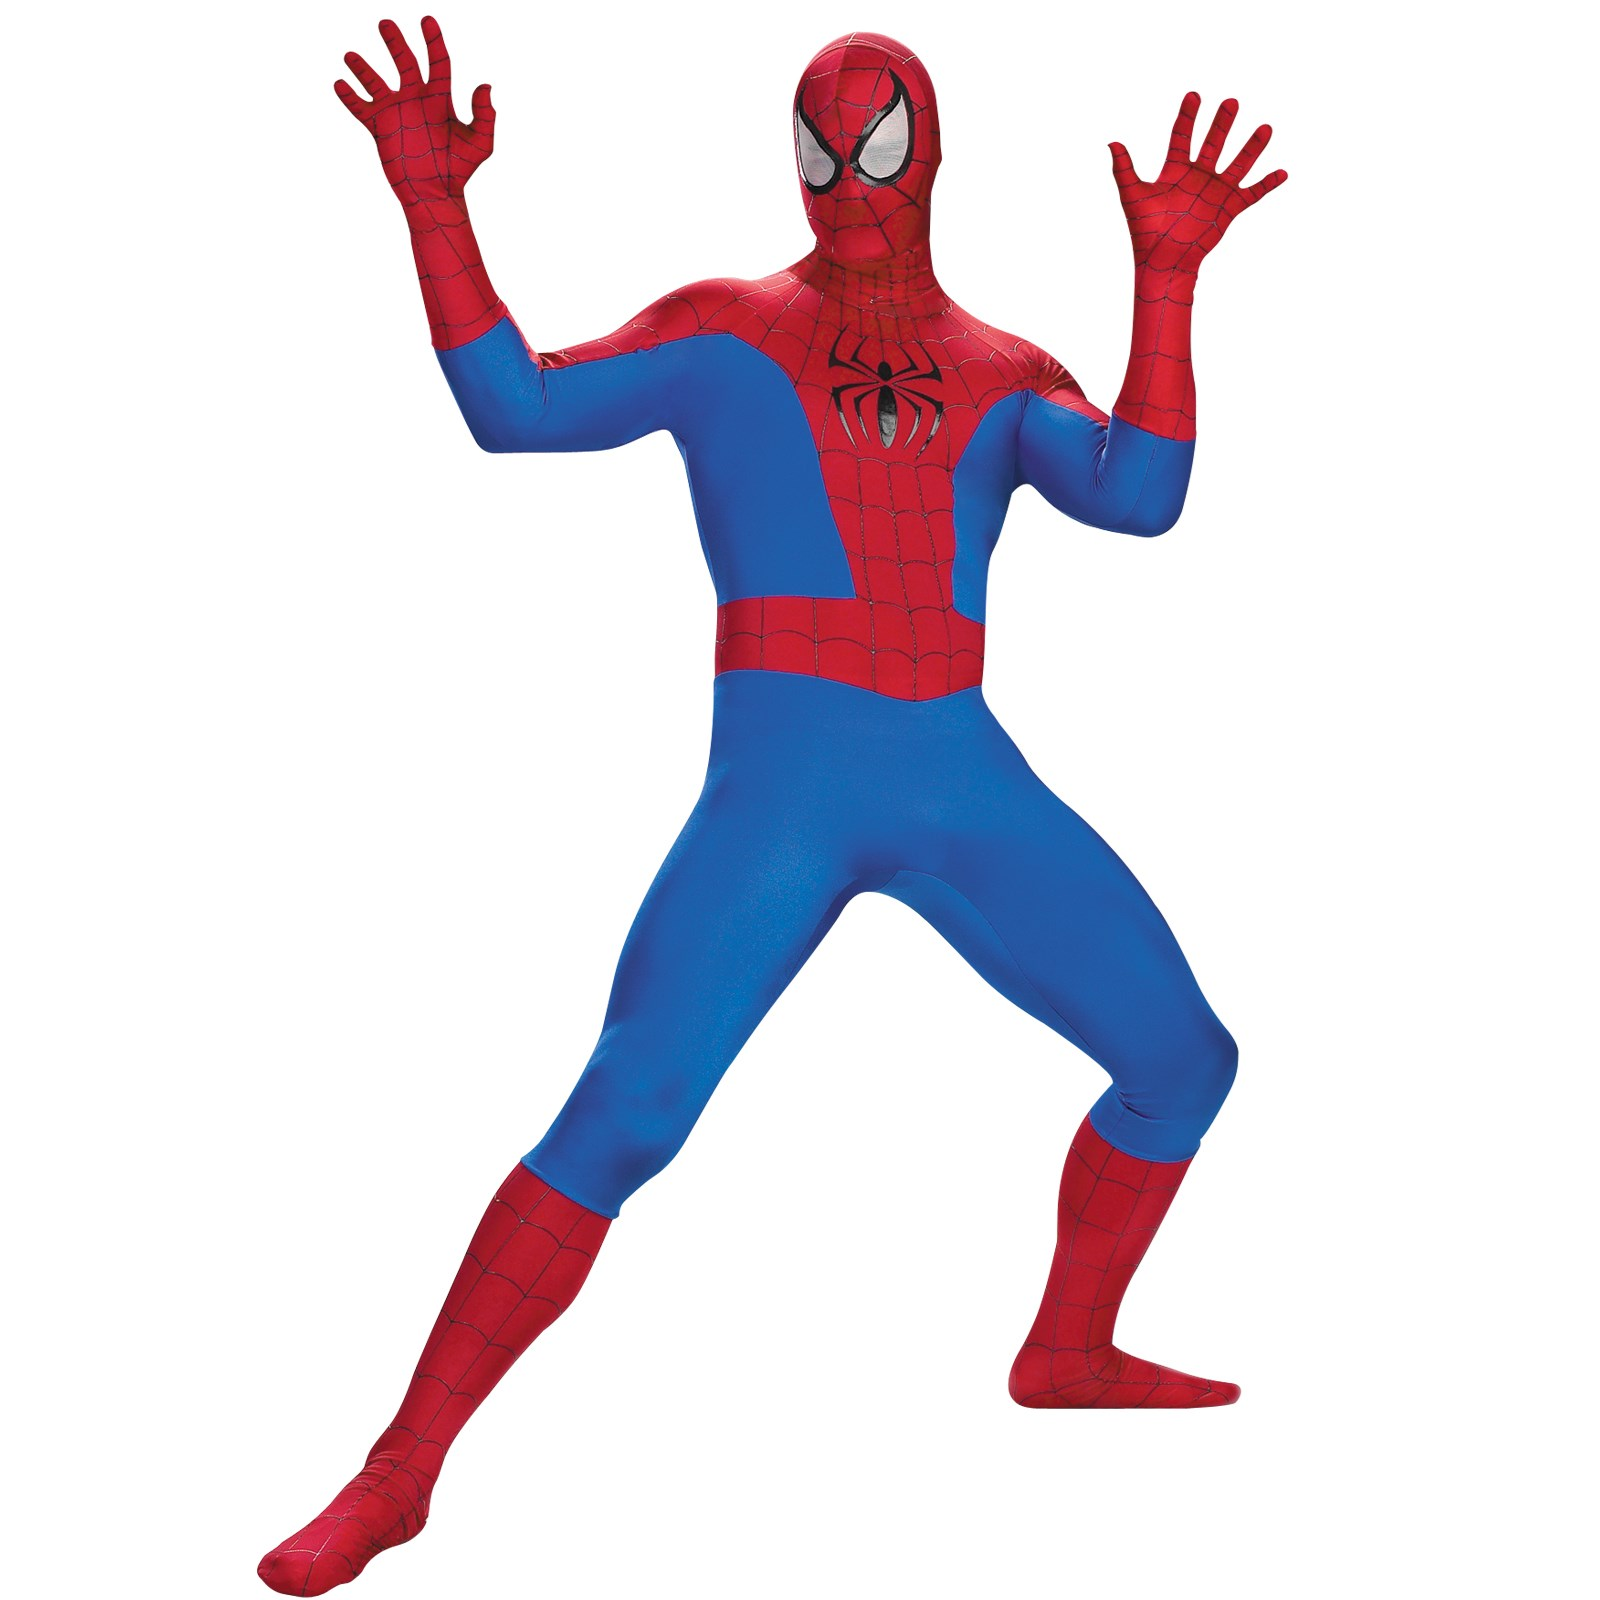 The Amazing Spider Man Super Deluxe Teen Costume